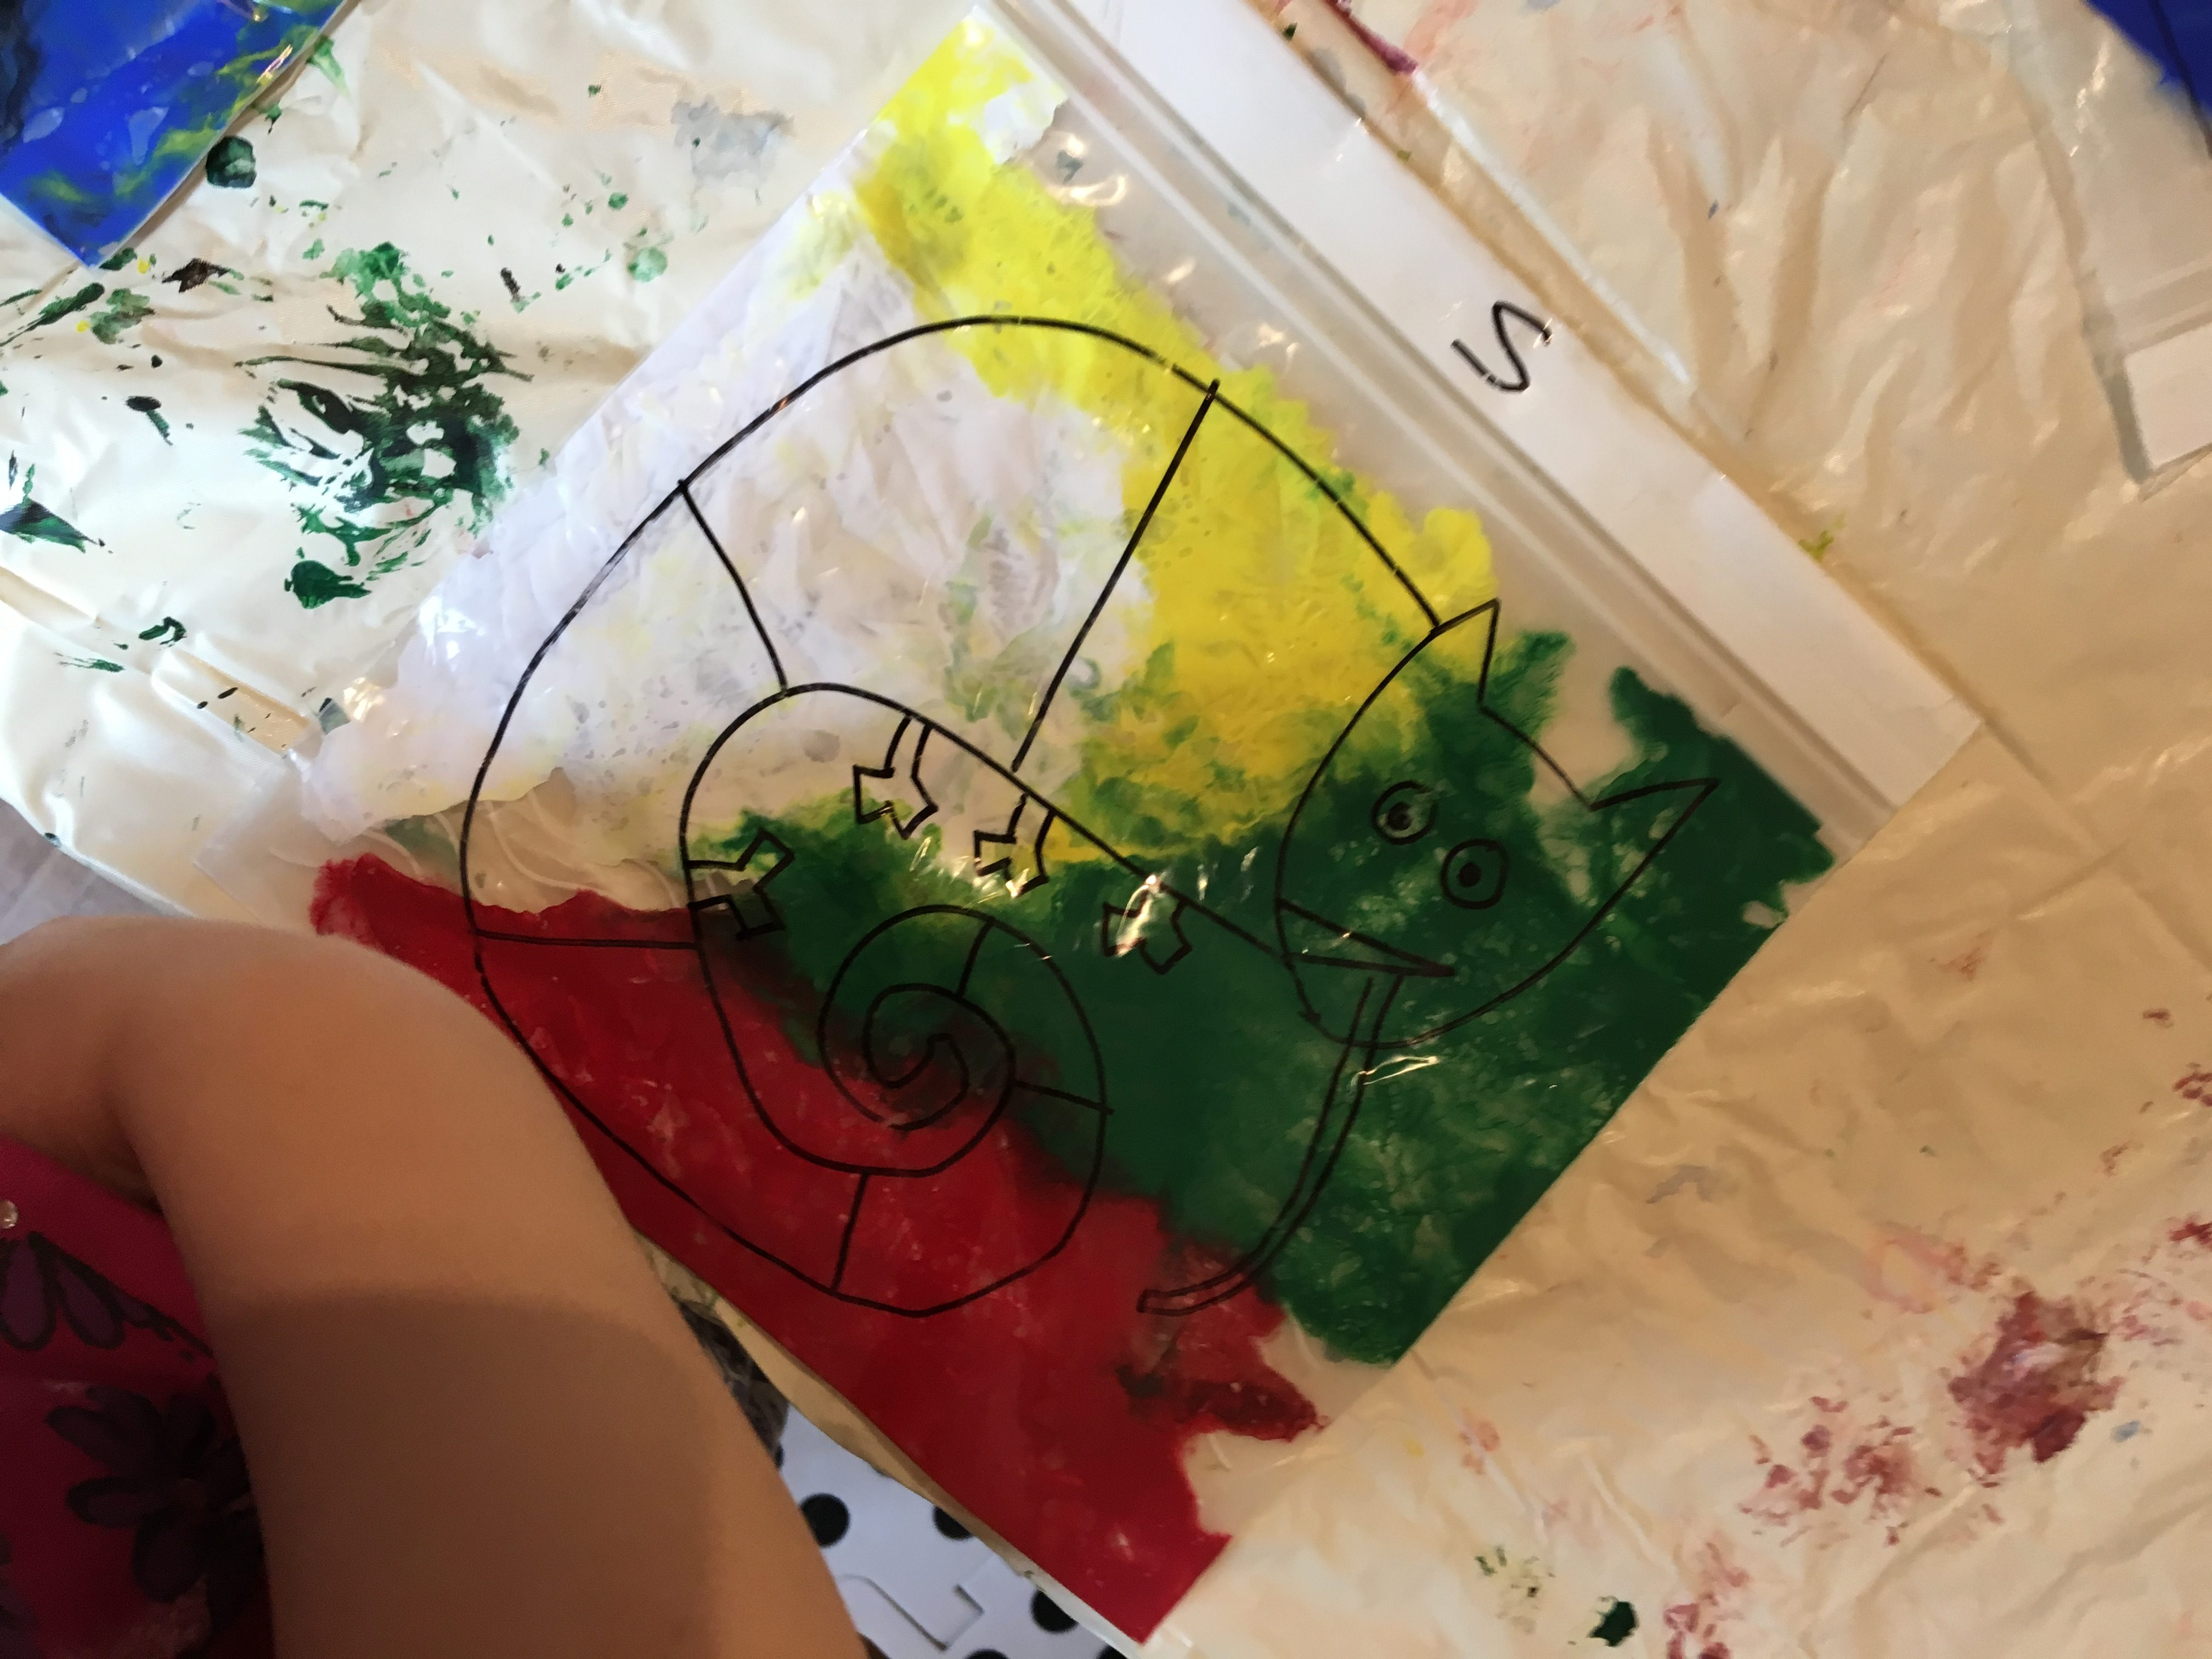 Craft - Mixing Paints